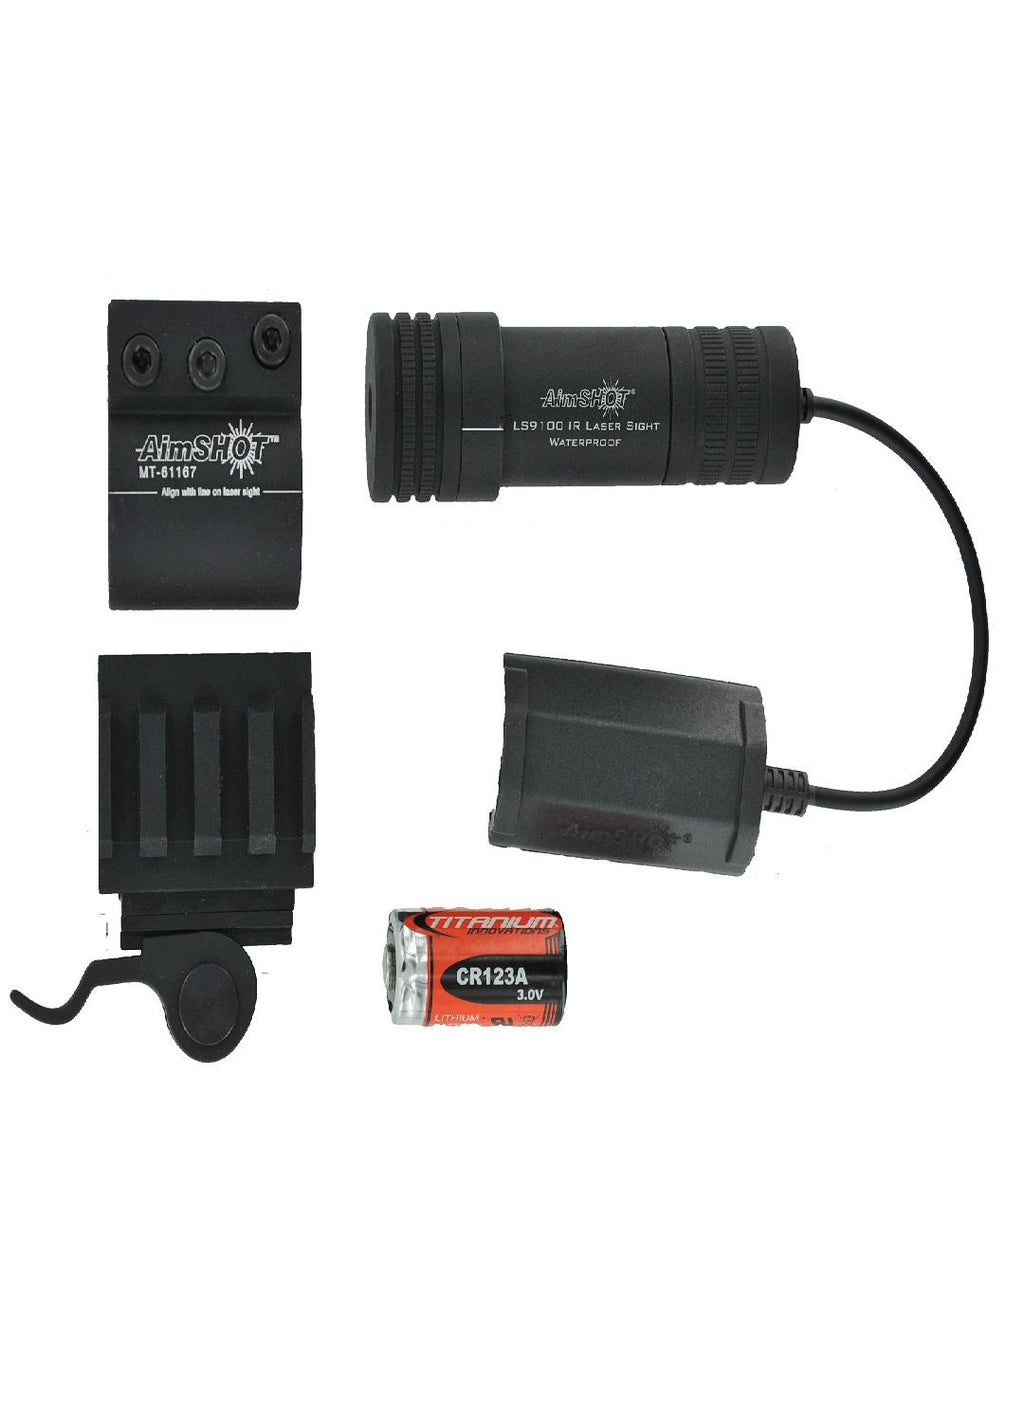 AimSHOT KT9172 Infrared Laser Sight Kit  w-QR Rail Mount